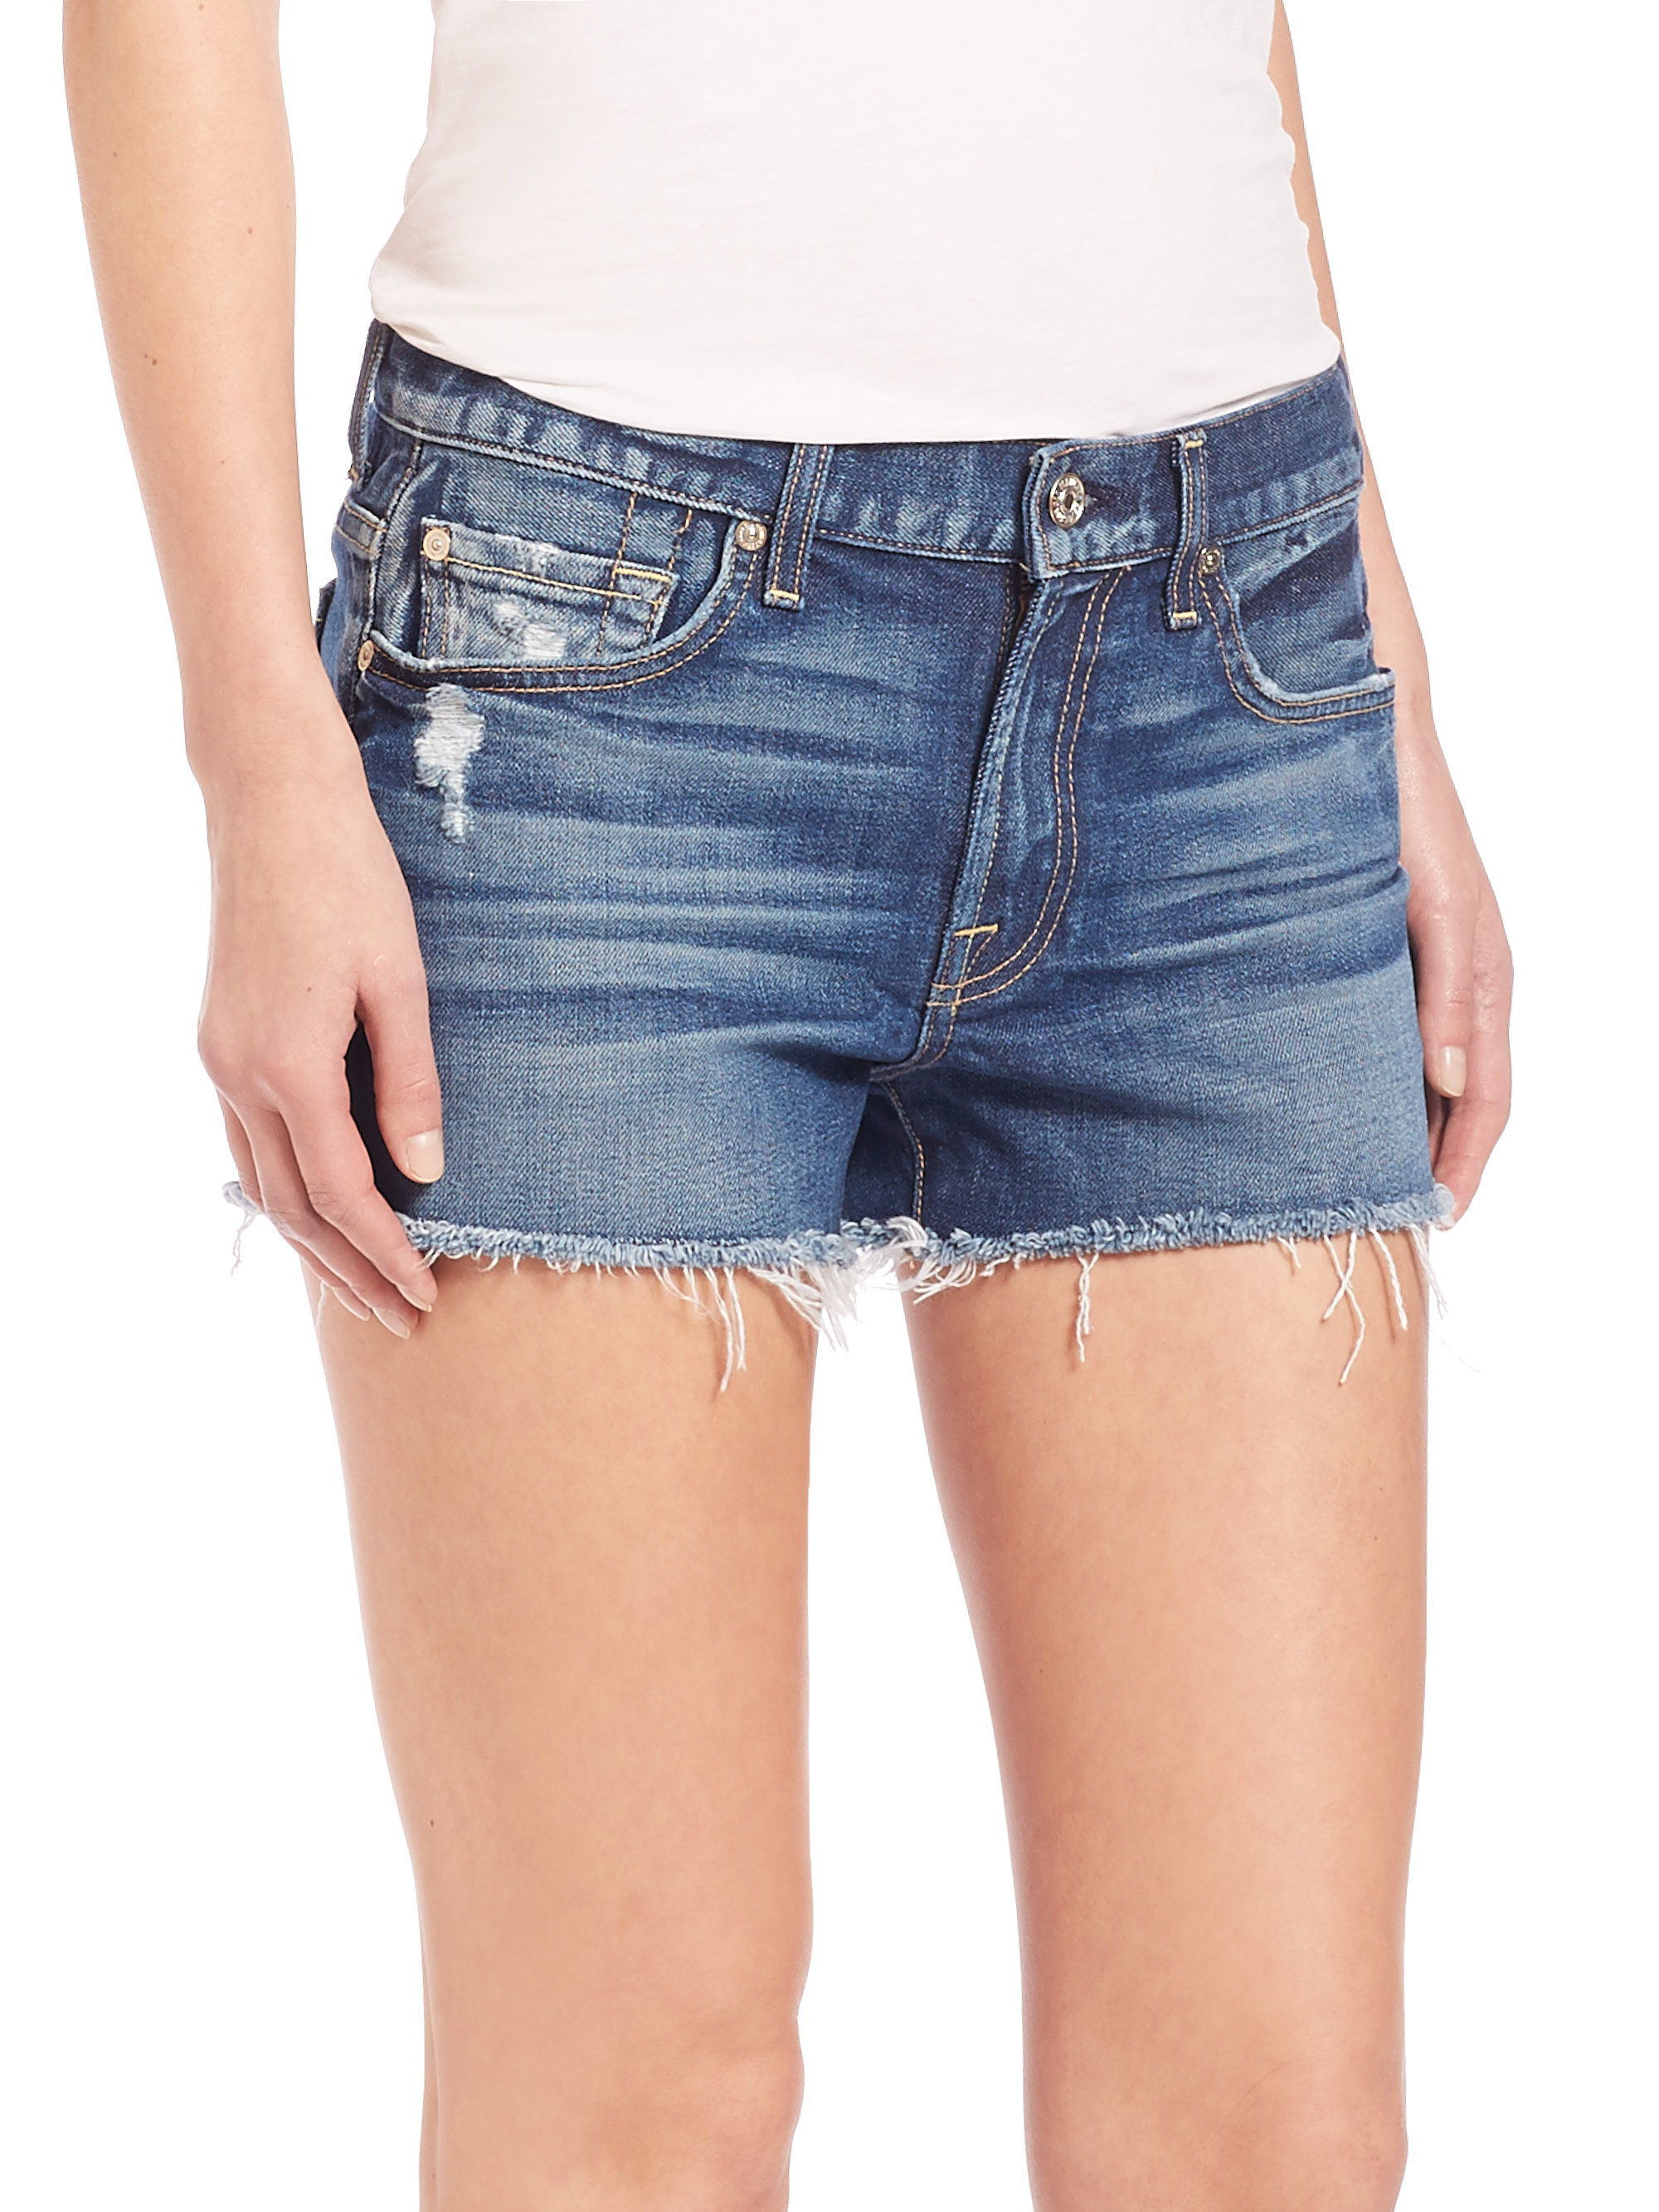 6a5f5000521f2 7 for all mankind Distressed Cut-off Shorts in Blue